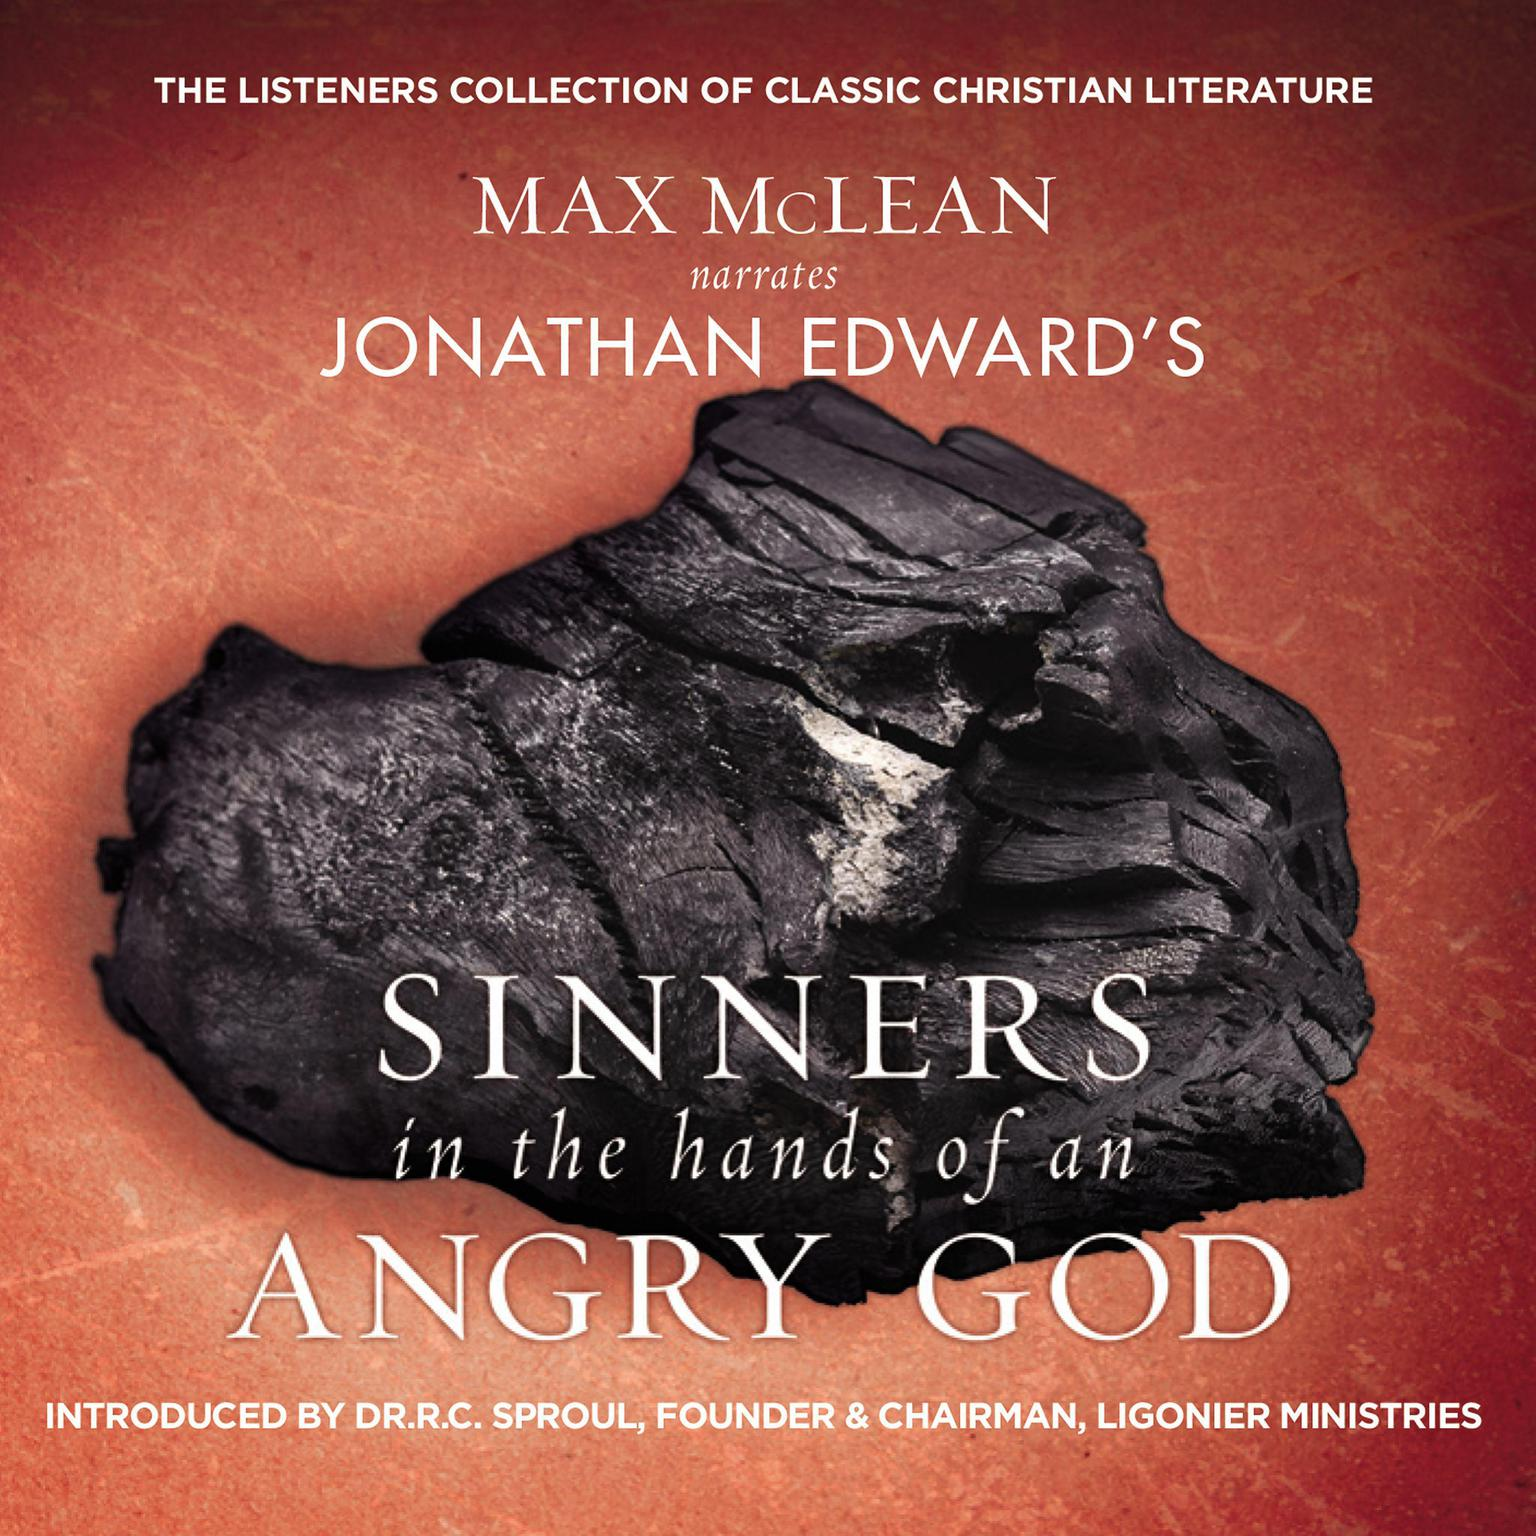 Printable Jonathan Edwards' Sinners in the Hands of an Angry God: The Most Powerful Sermon Ever Preached on American Soil Audiobook Cover Art